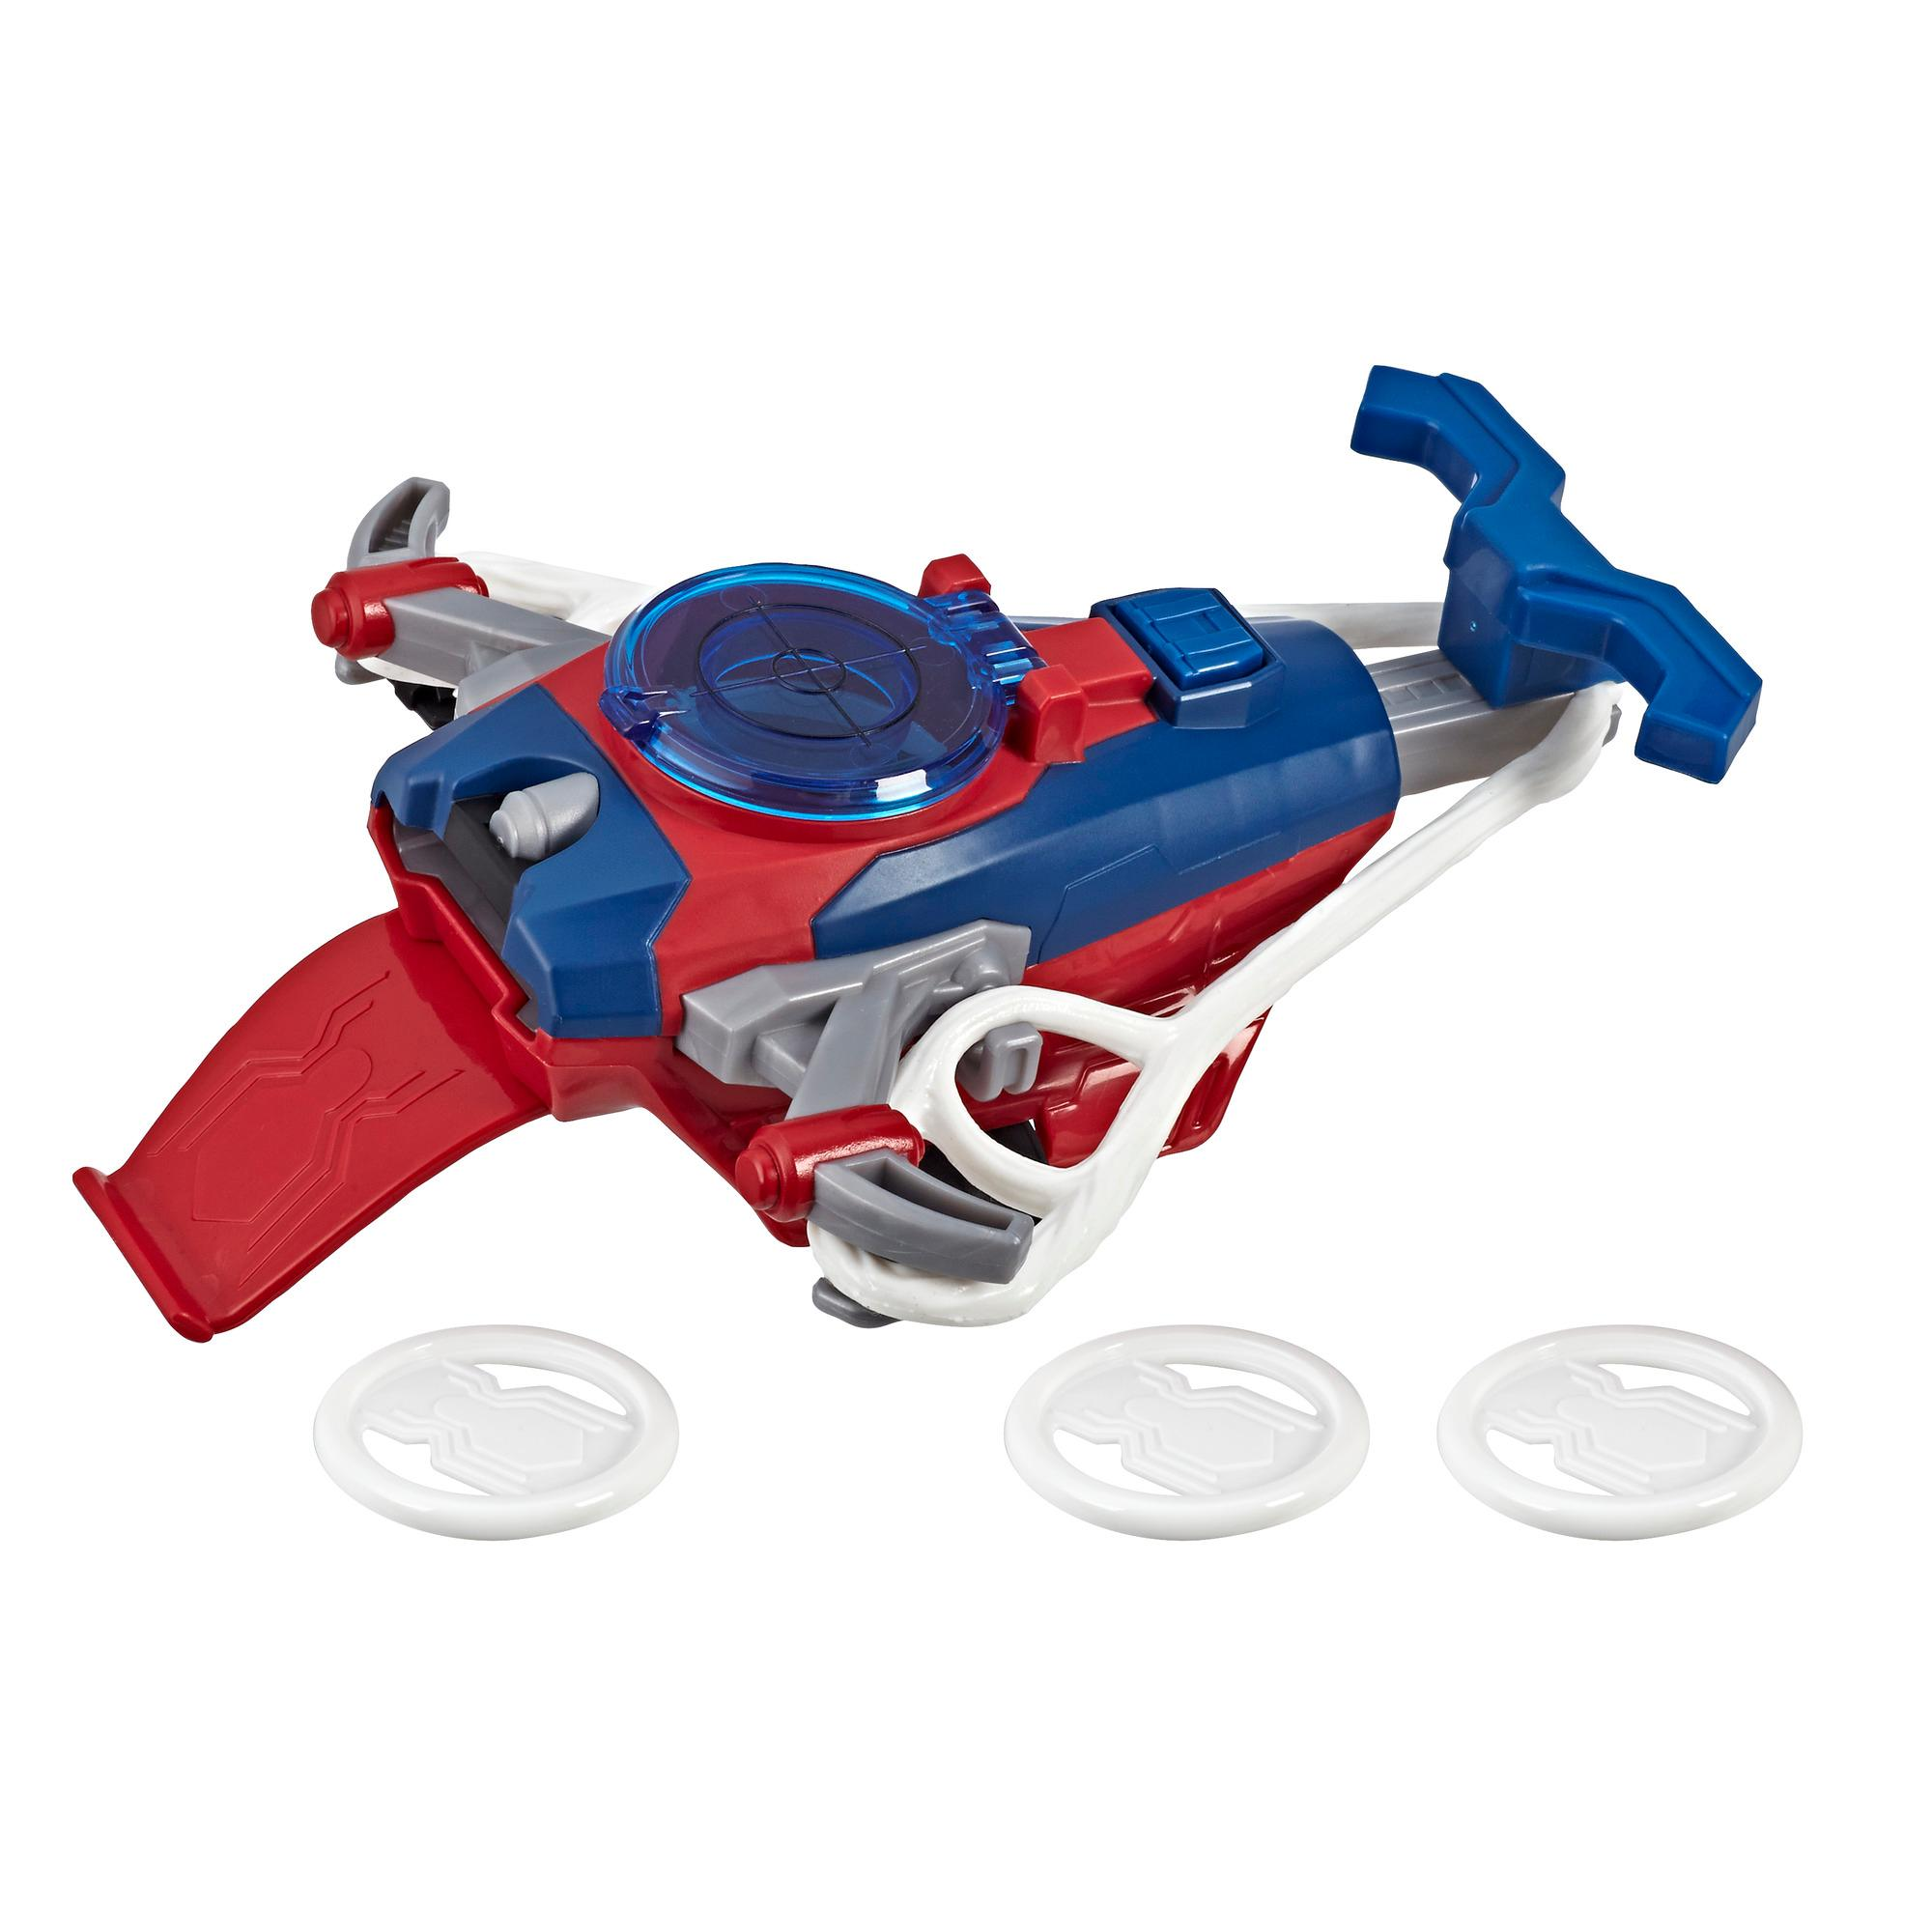 Spider-Man Web Shots Disc Slinger Blaster Toy for Kids Ages 5 and Up